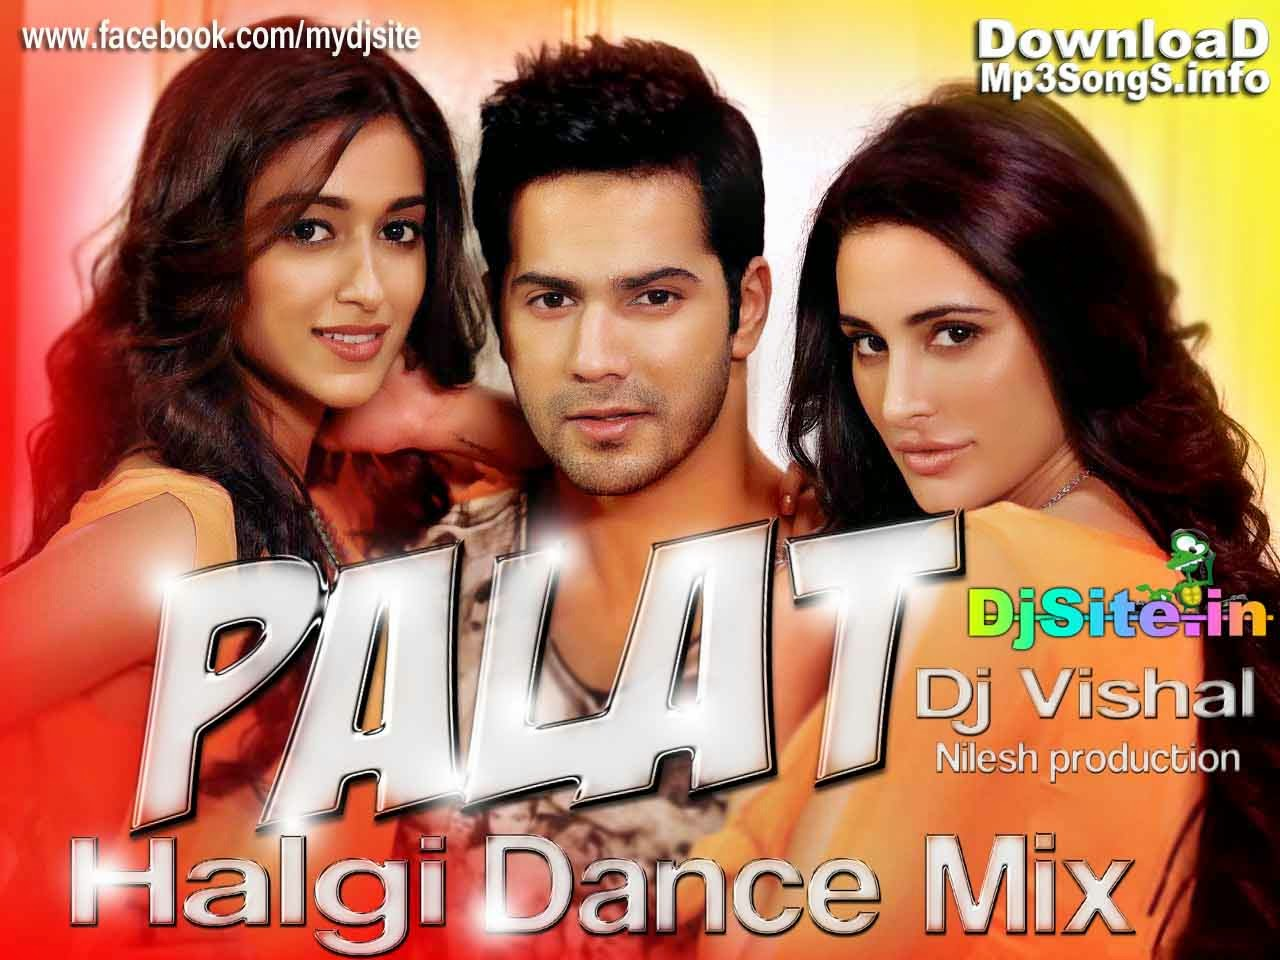 aaff hindi songs download free mp DJ halgi.